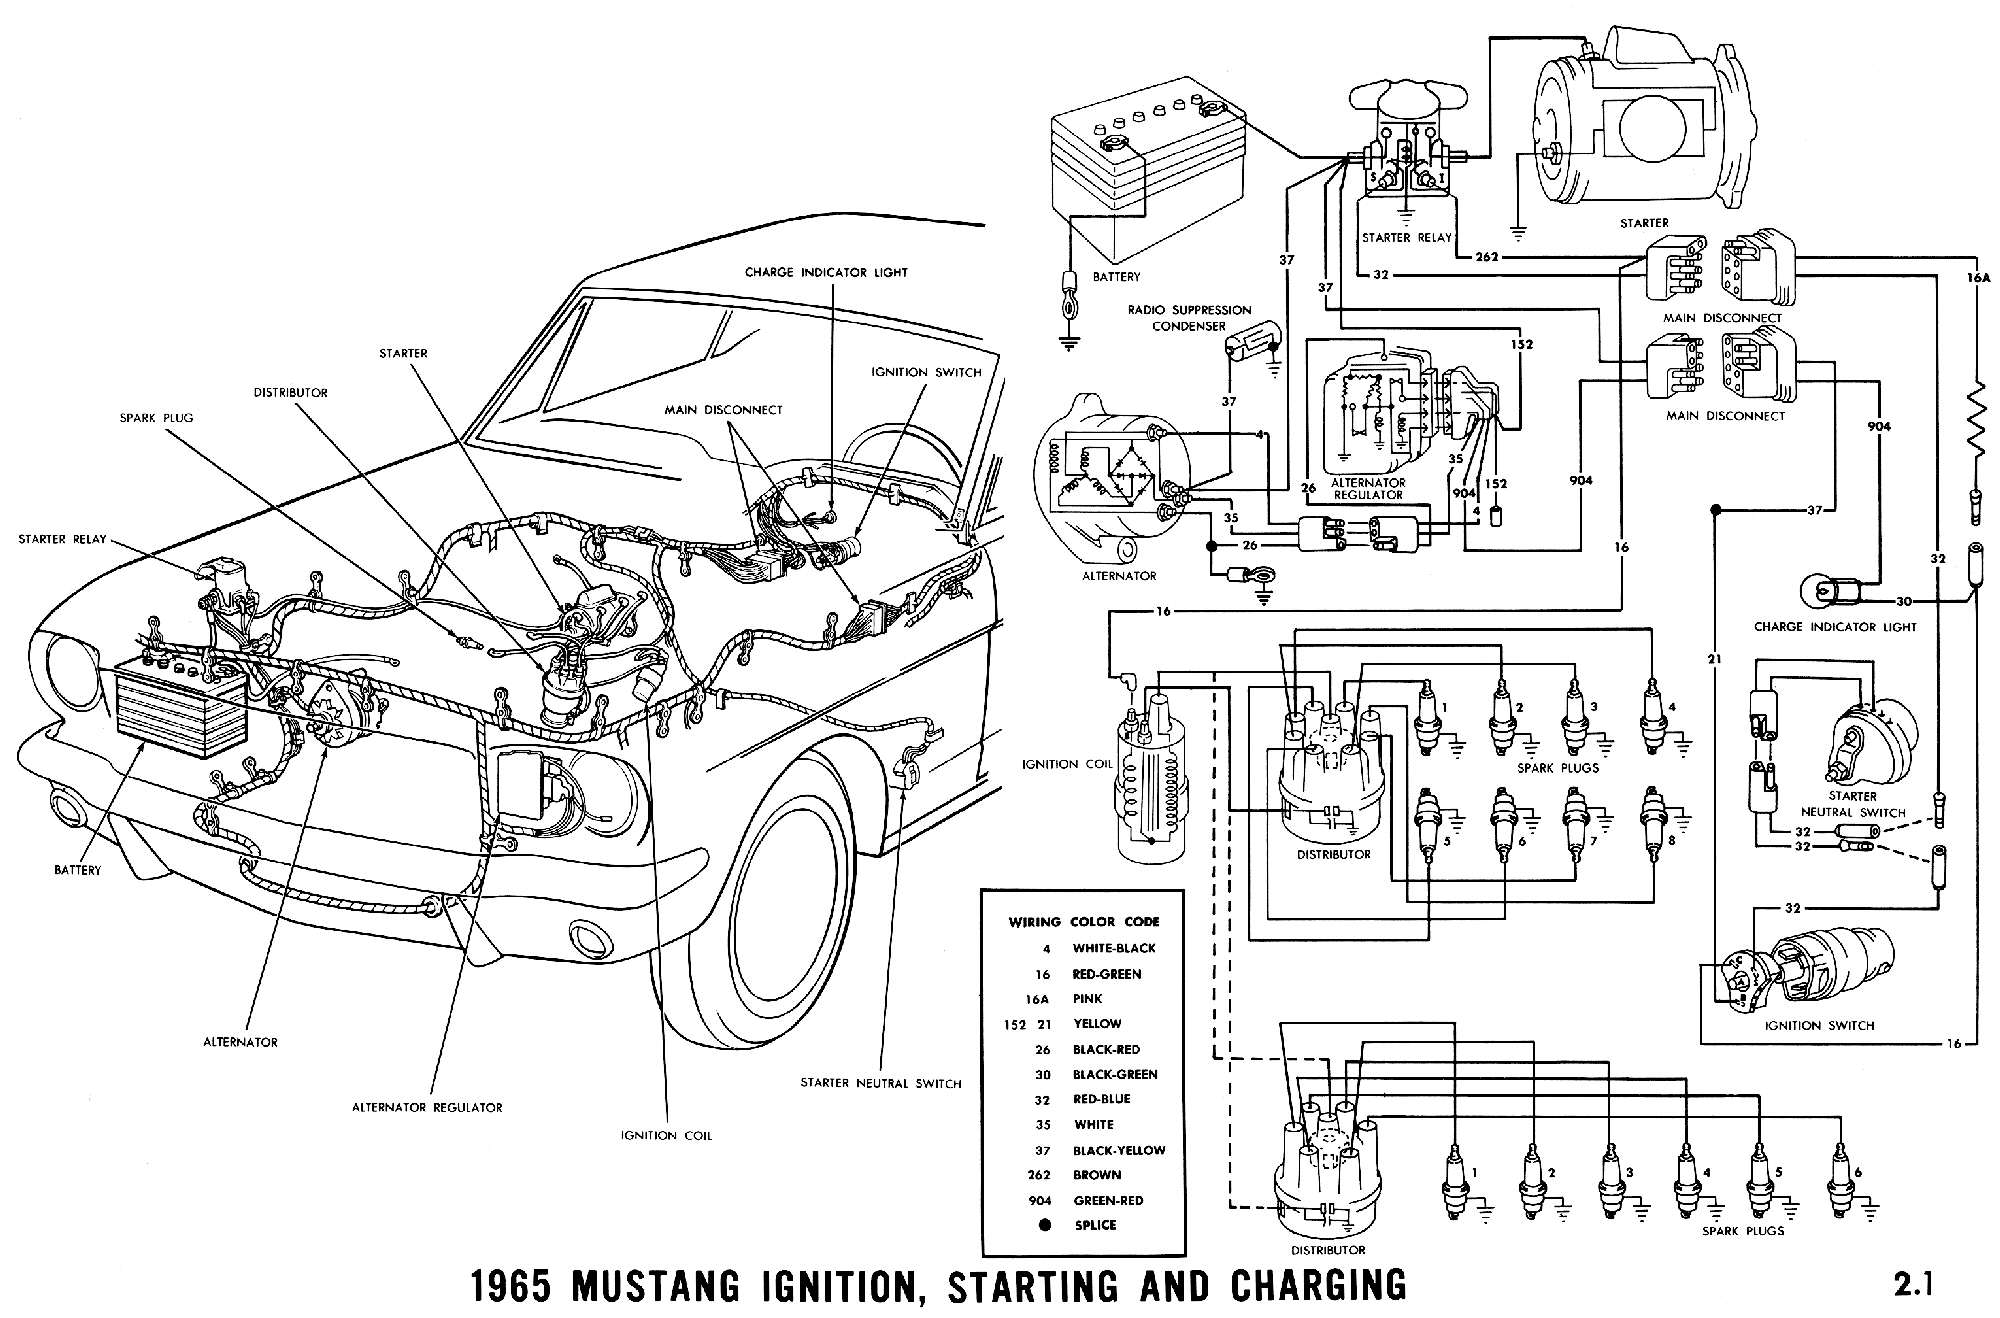 1965c 1965 mustang wiring diagrams average joe restoration 1969 ford mustang wiring diagram at nearapp.co